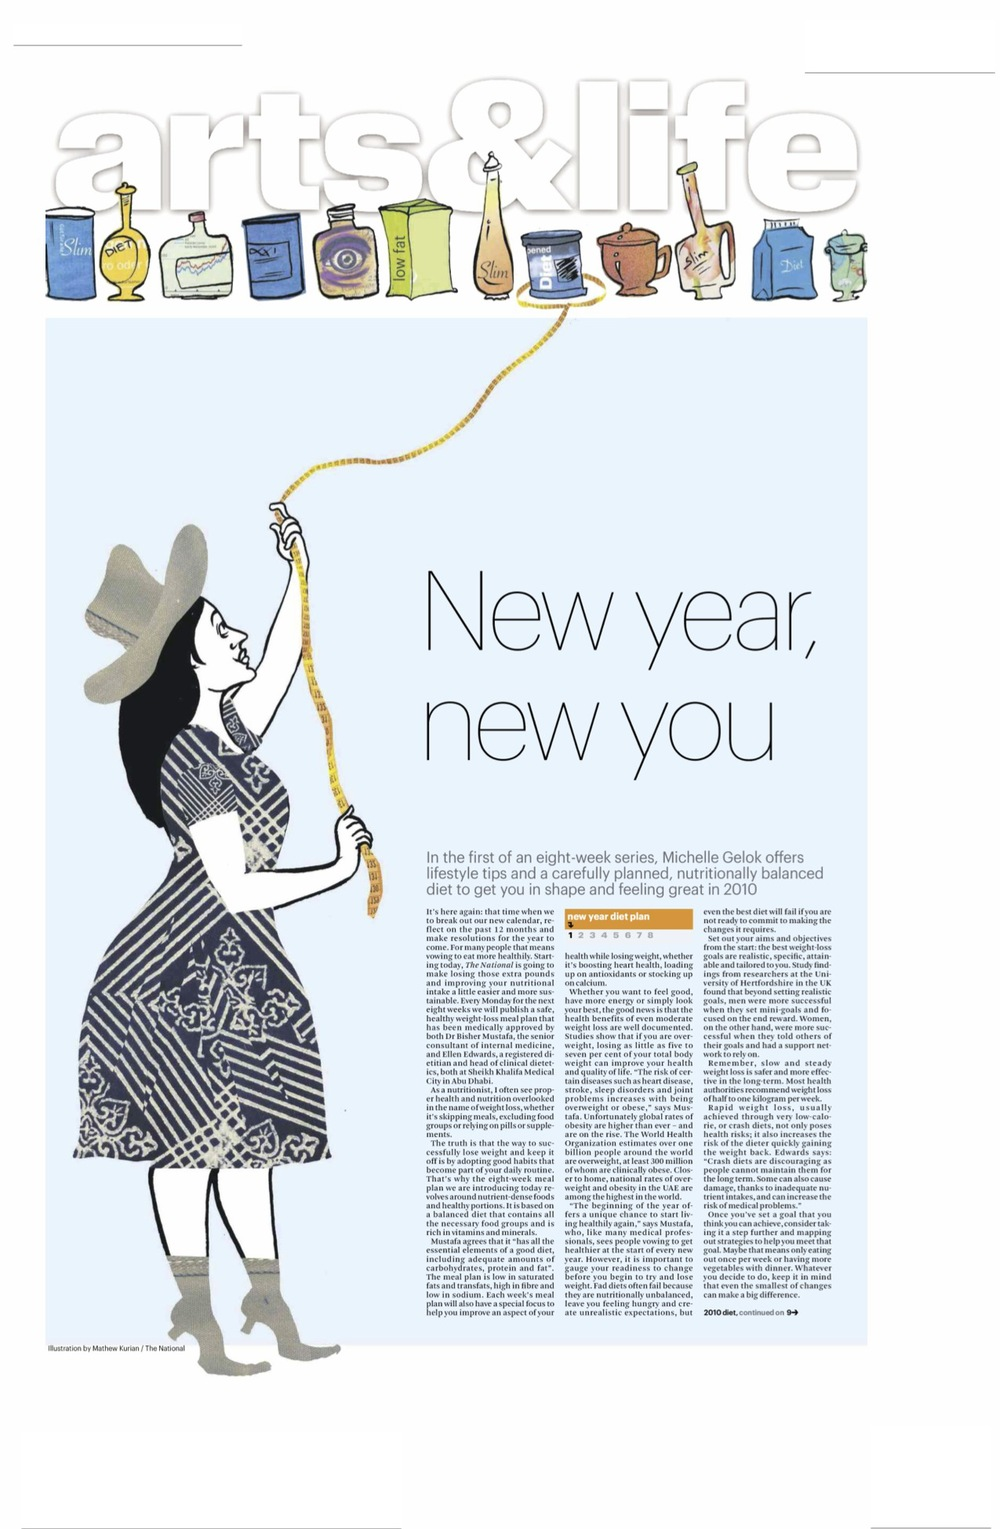 MG New Year Series_The National 2010 copy.jpg